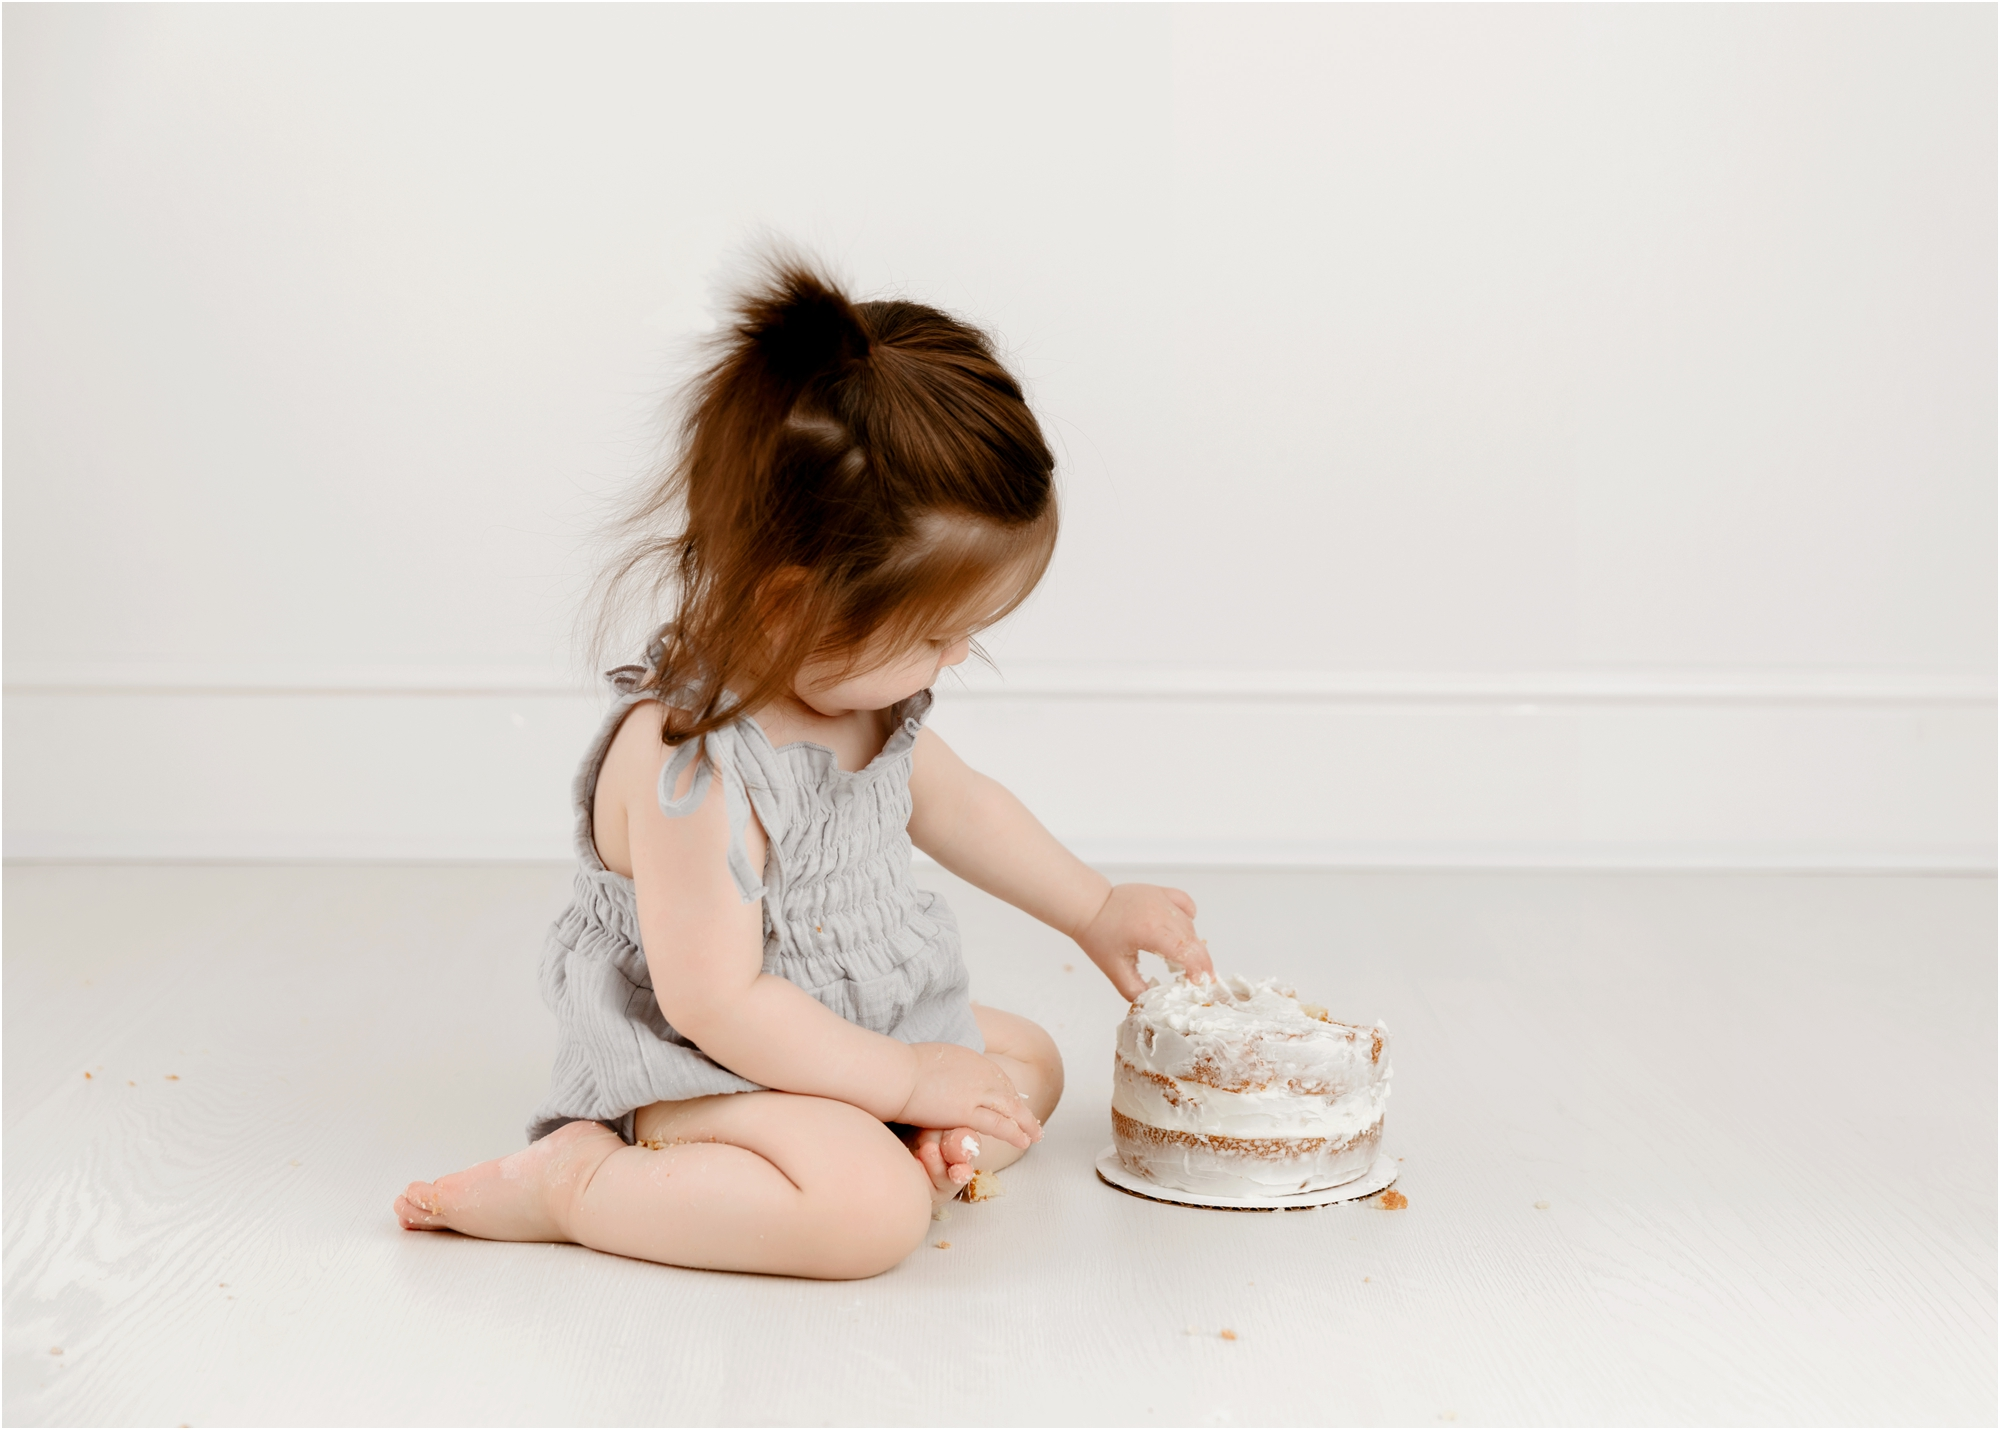 Baby gently eating frosting during cake smash session in Houston photography studio. Photo by Lifetime of Clicks Photography.